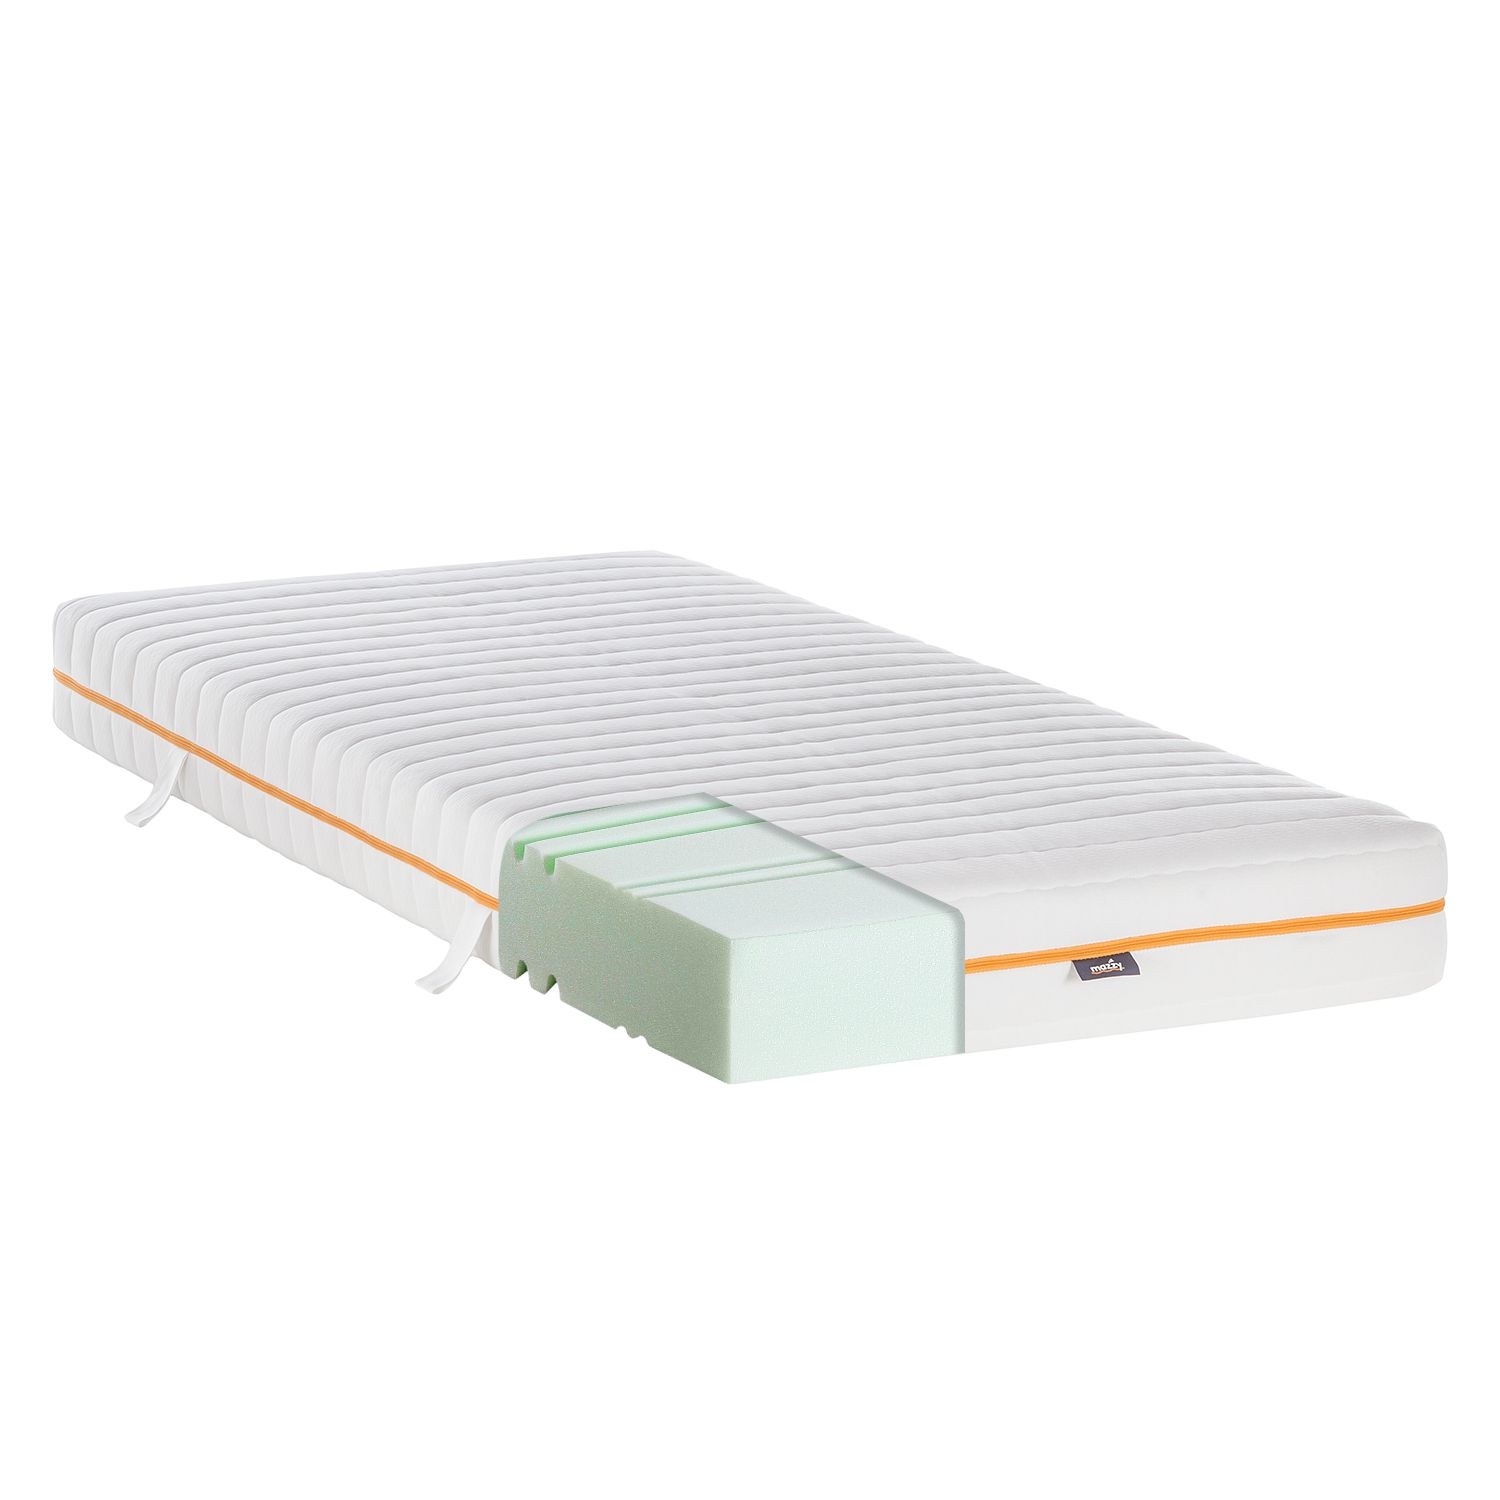 Matelas Mazzy Mousse froide - 80 x 200cm, mazzy